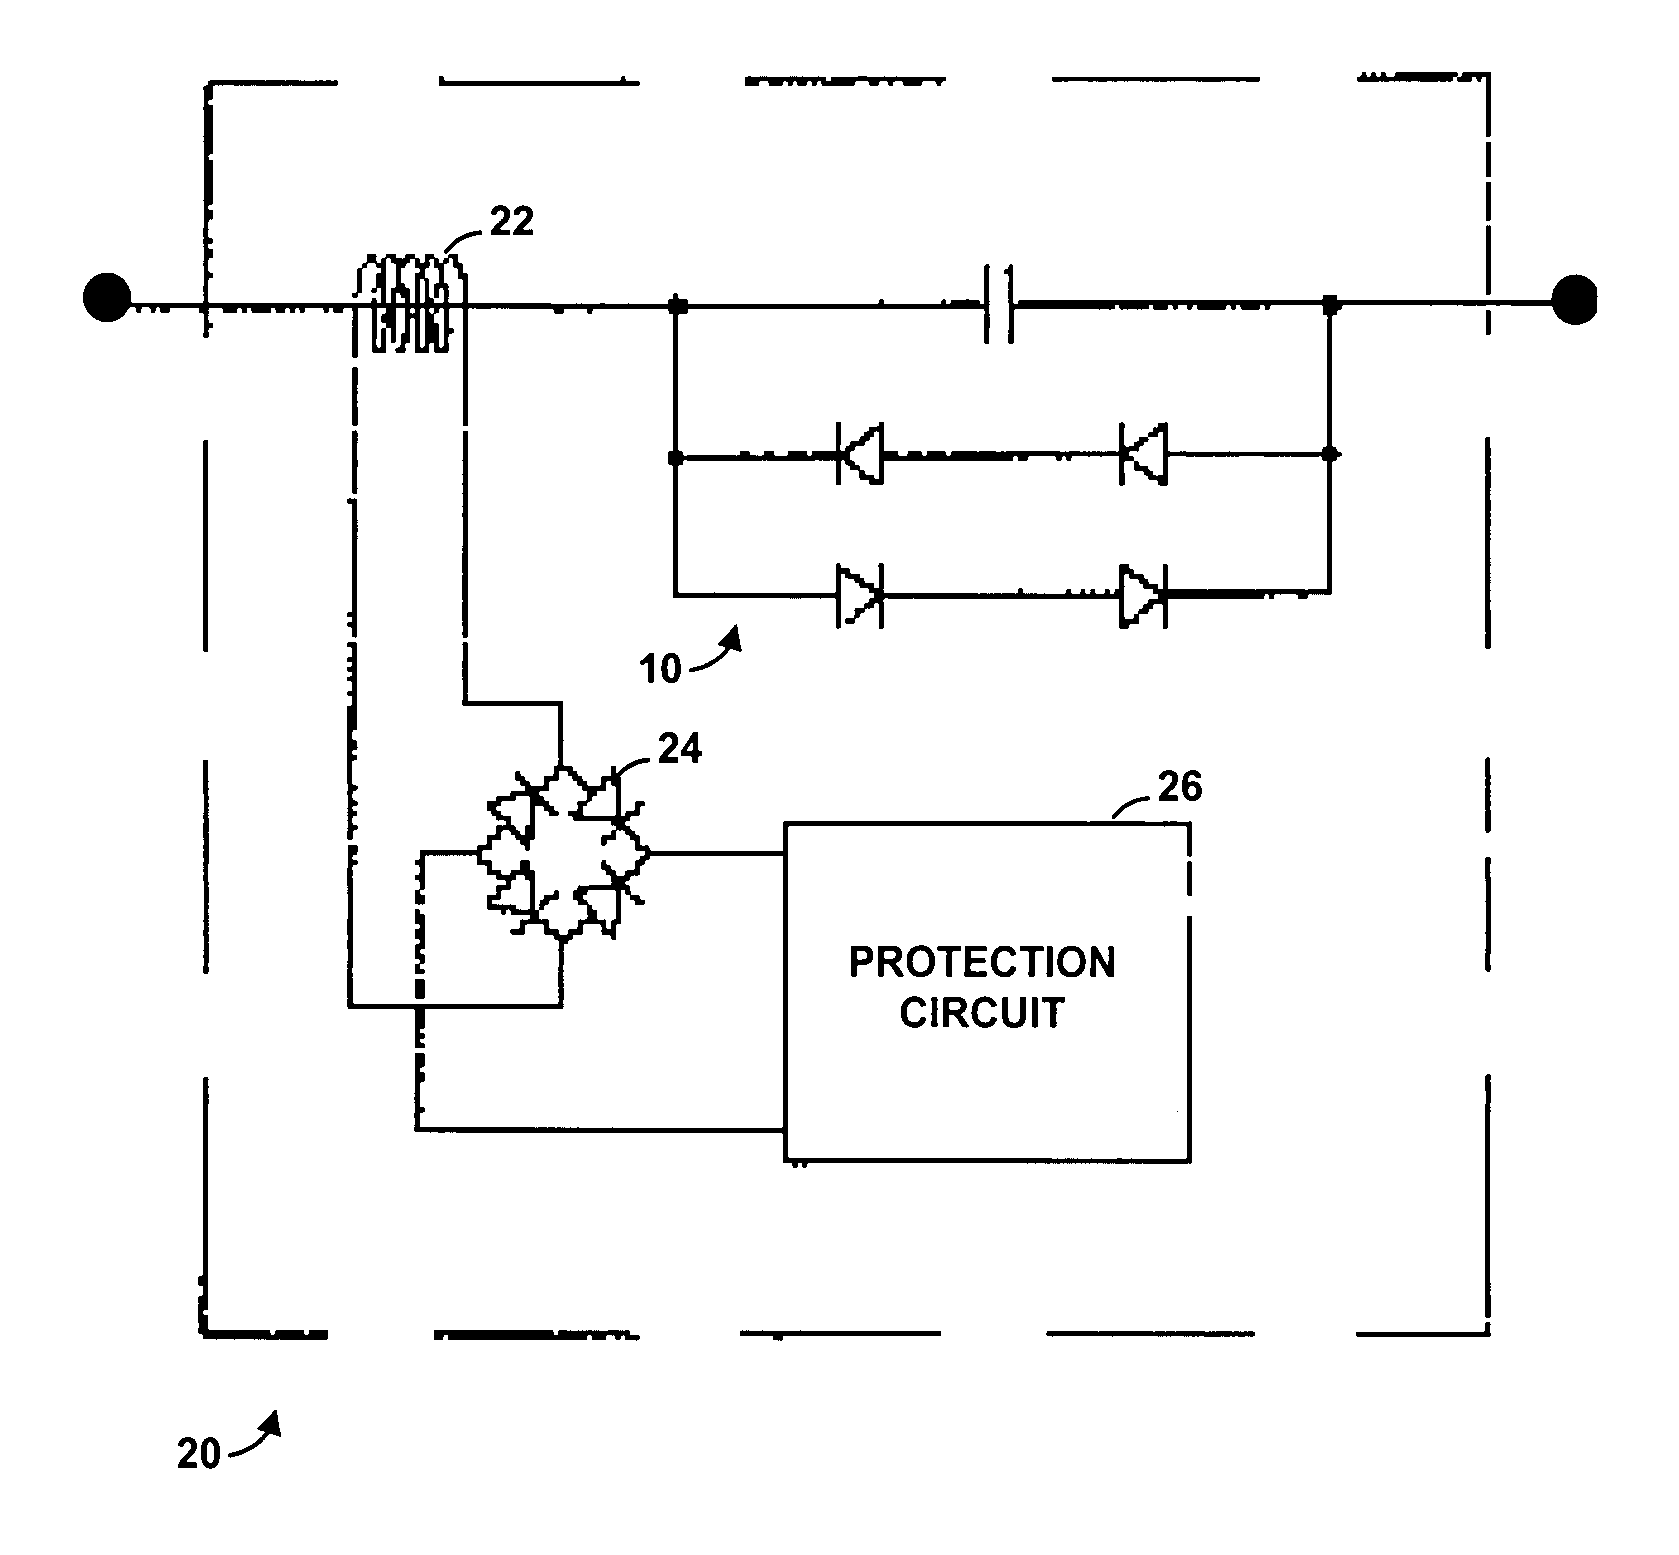 Galvanic Isolator Circuit Schematic - Wiring Diagram And ... on